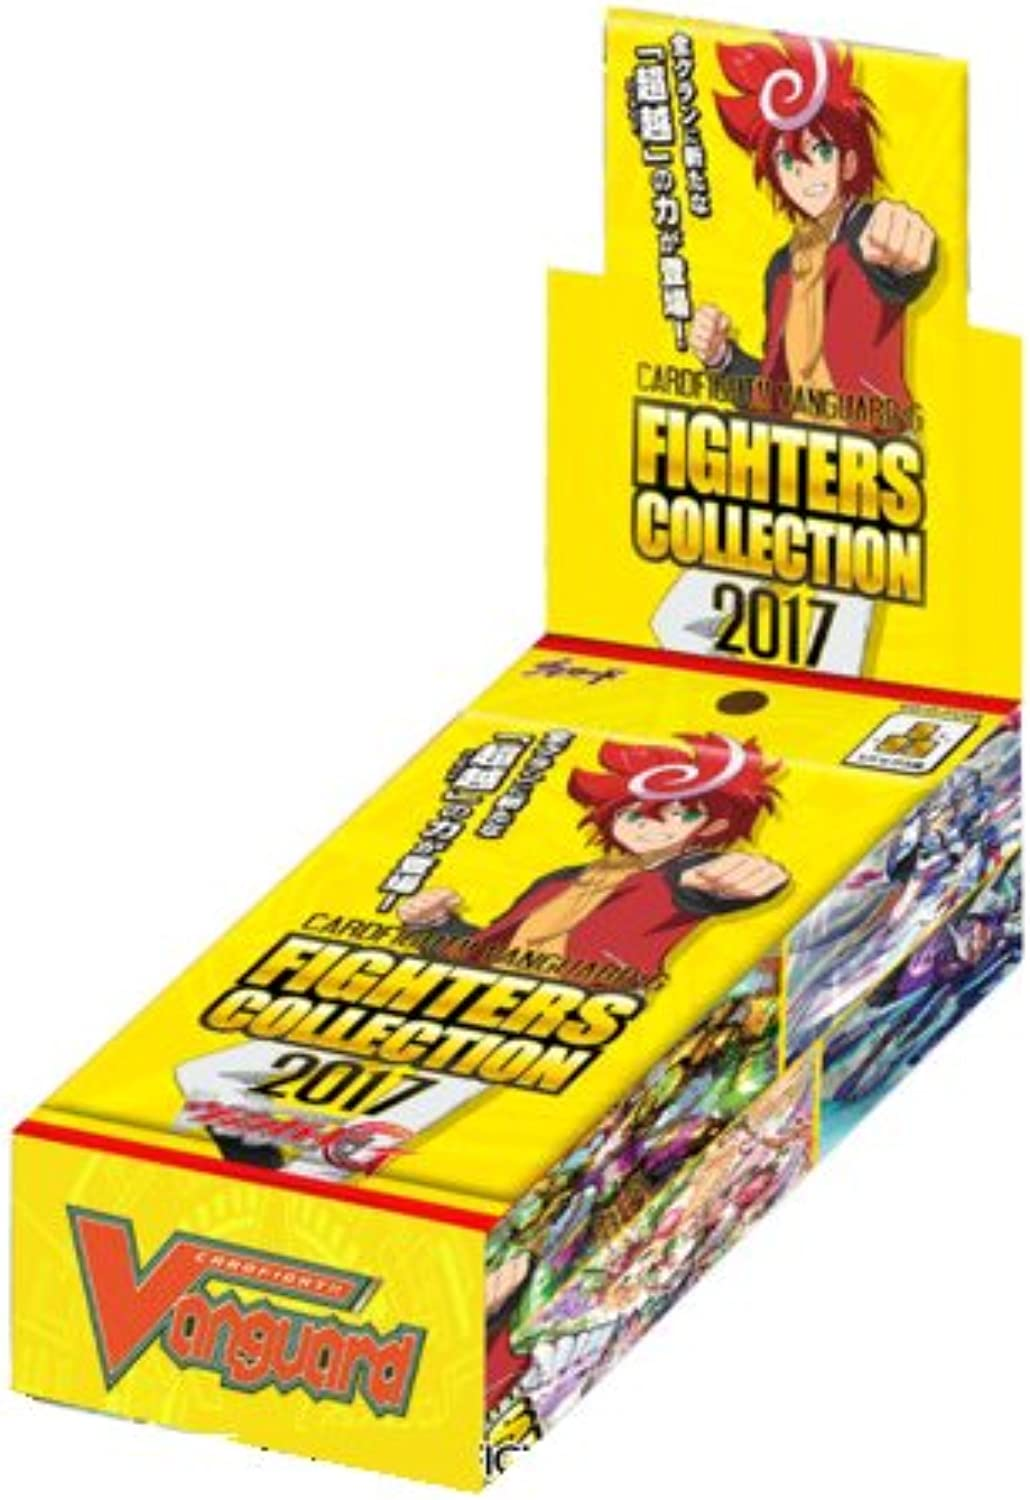 Cardfight Vanguard 2017 Fighter's Collection FC04 English Booster Box - 10 packs